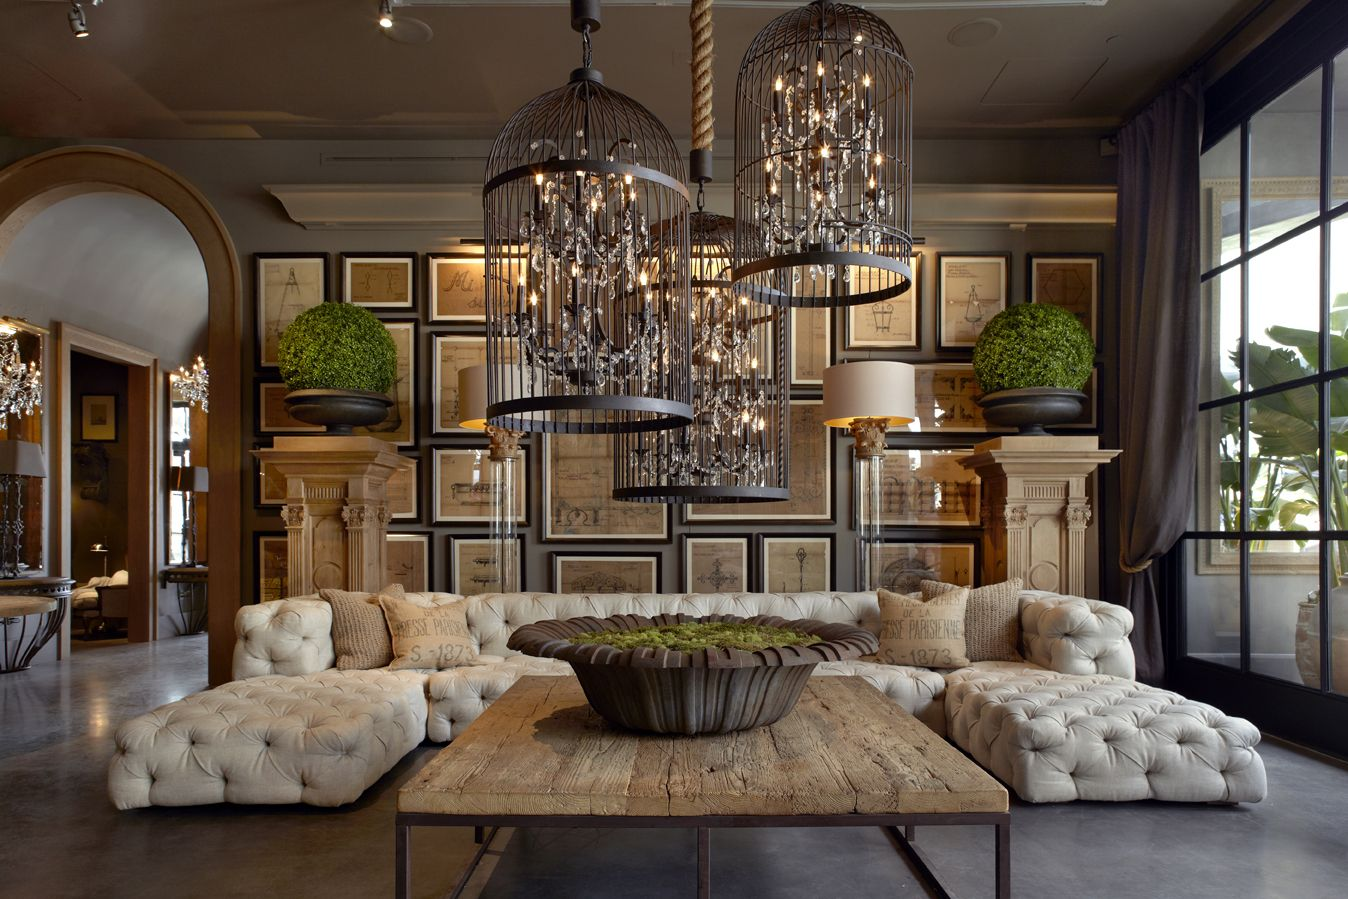 Image Result For What Decorating Style Is Restoration Hardware